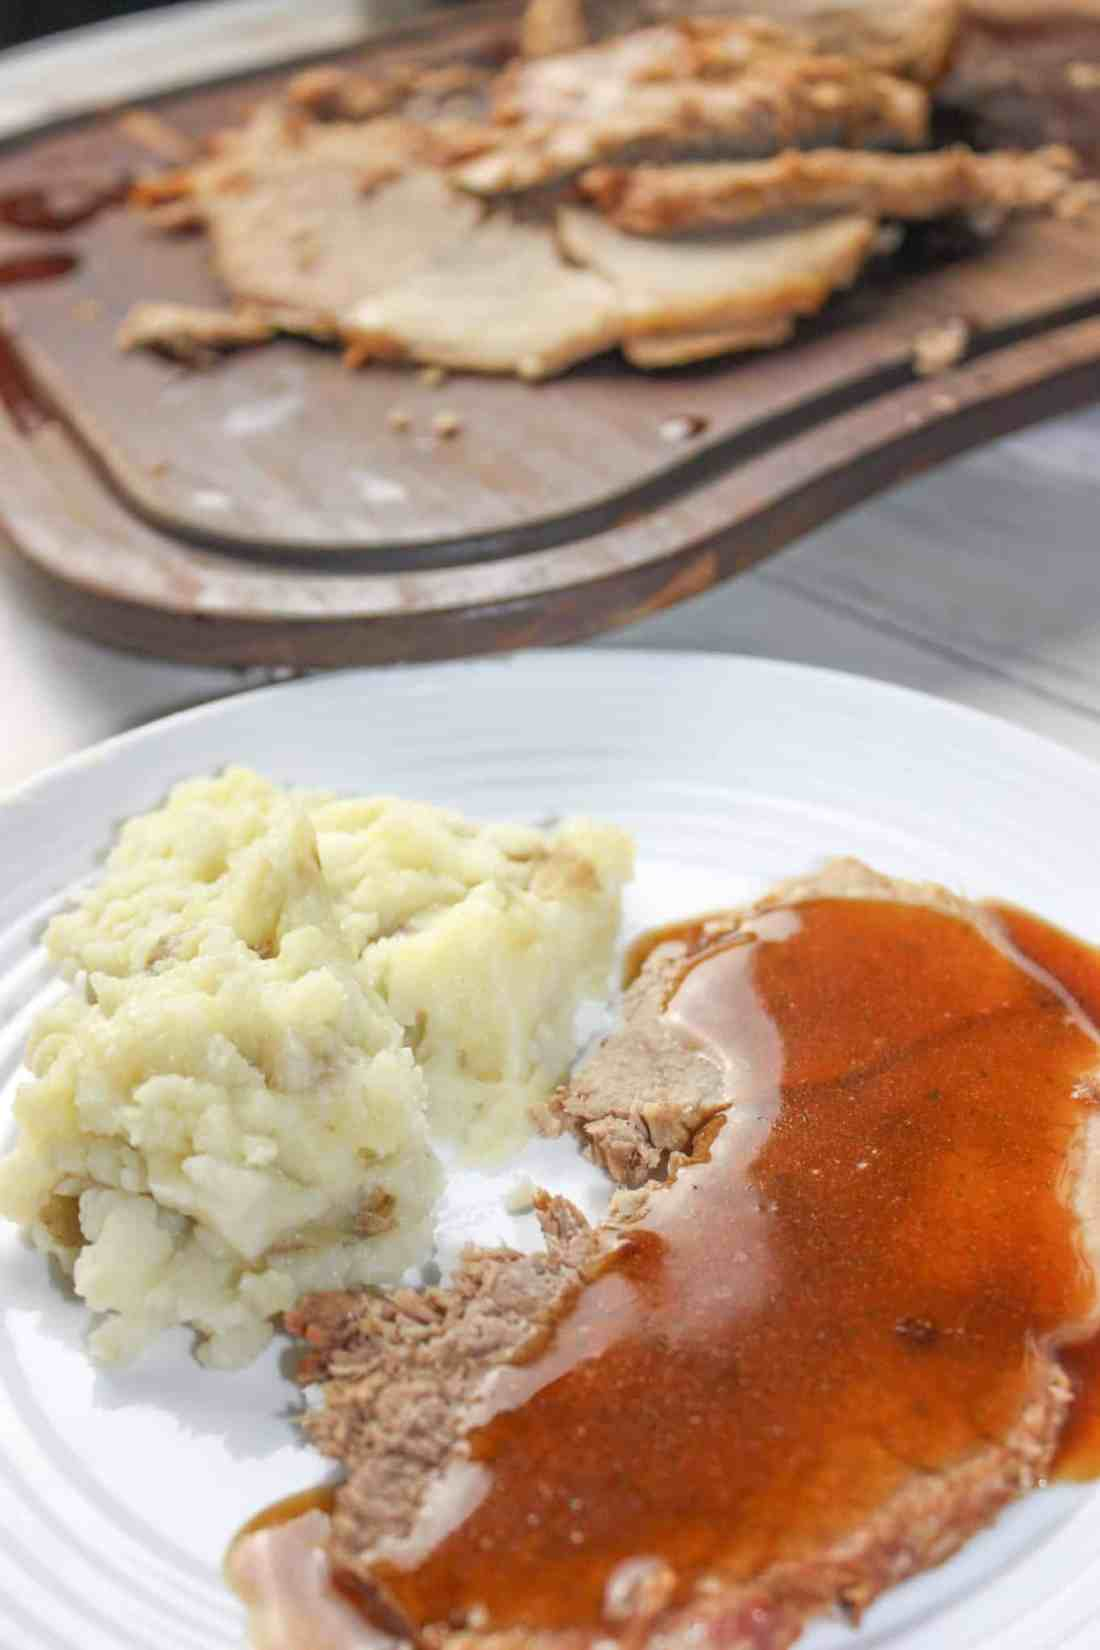 Instant Pot Beef Round Roast with Gravy takes a tougher cut of beef and turns it into a moist and tender main course.  This pressure cooker recipe makes it easy to serve up Sunday Dinner any day of the week!